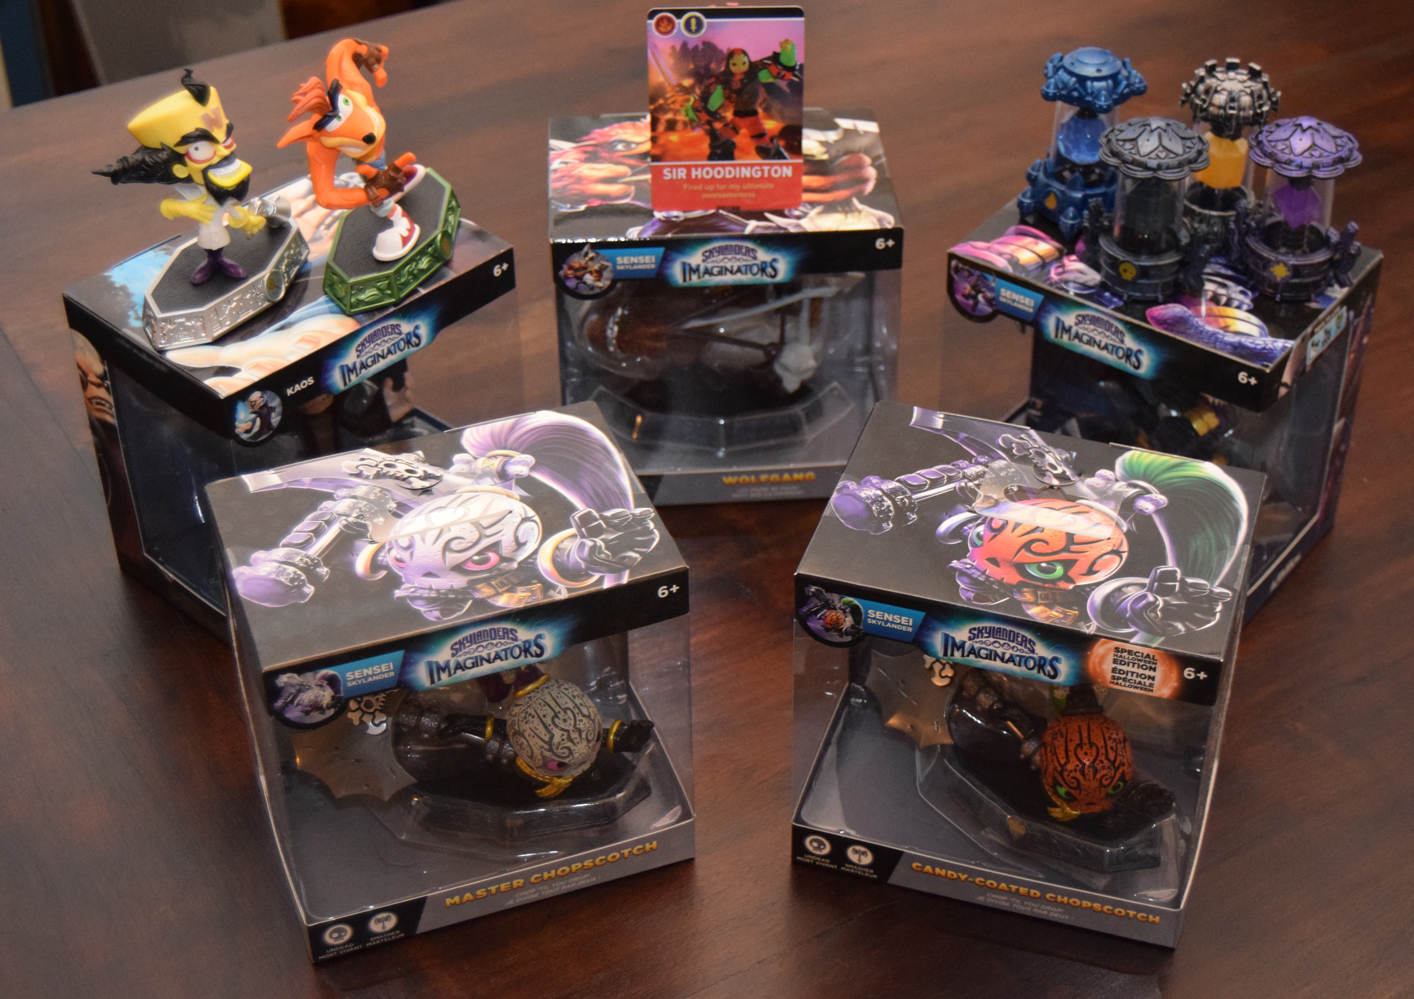 Candy-Coated Chopscotch with other Skylanders Imaginators figures